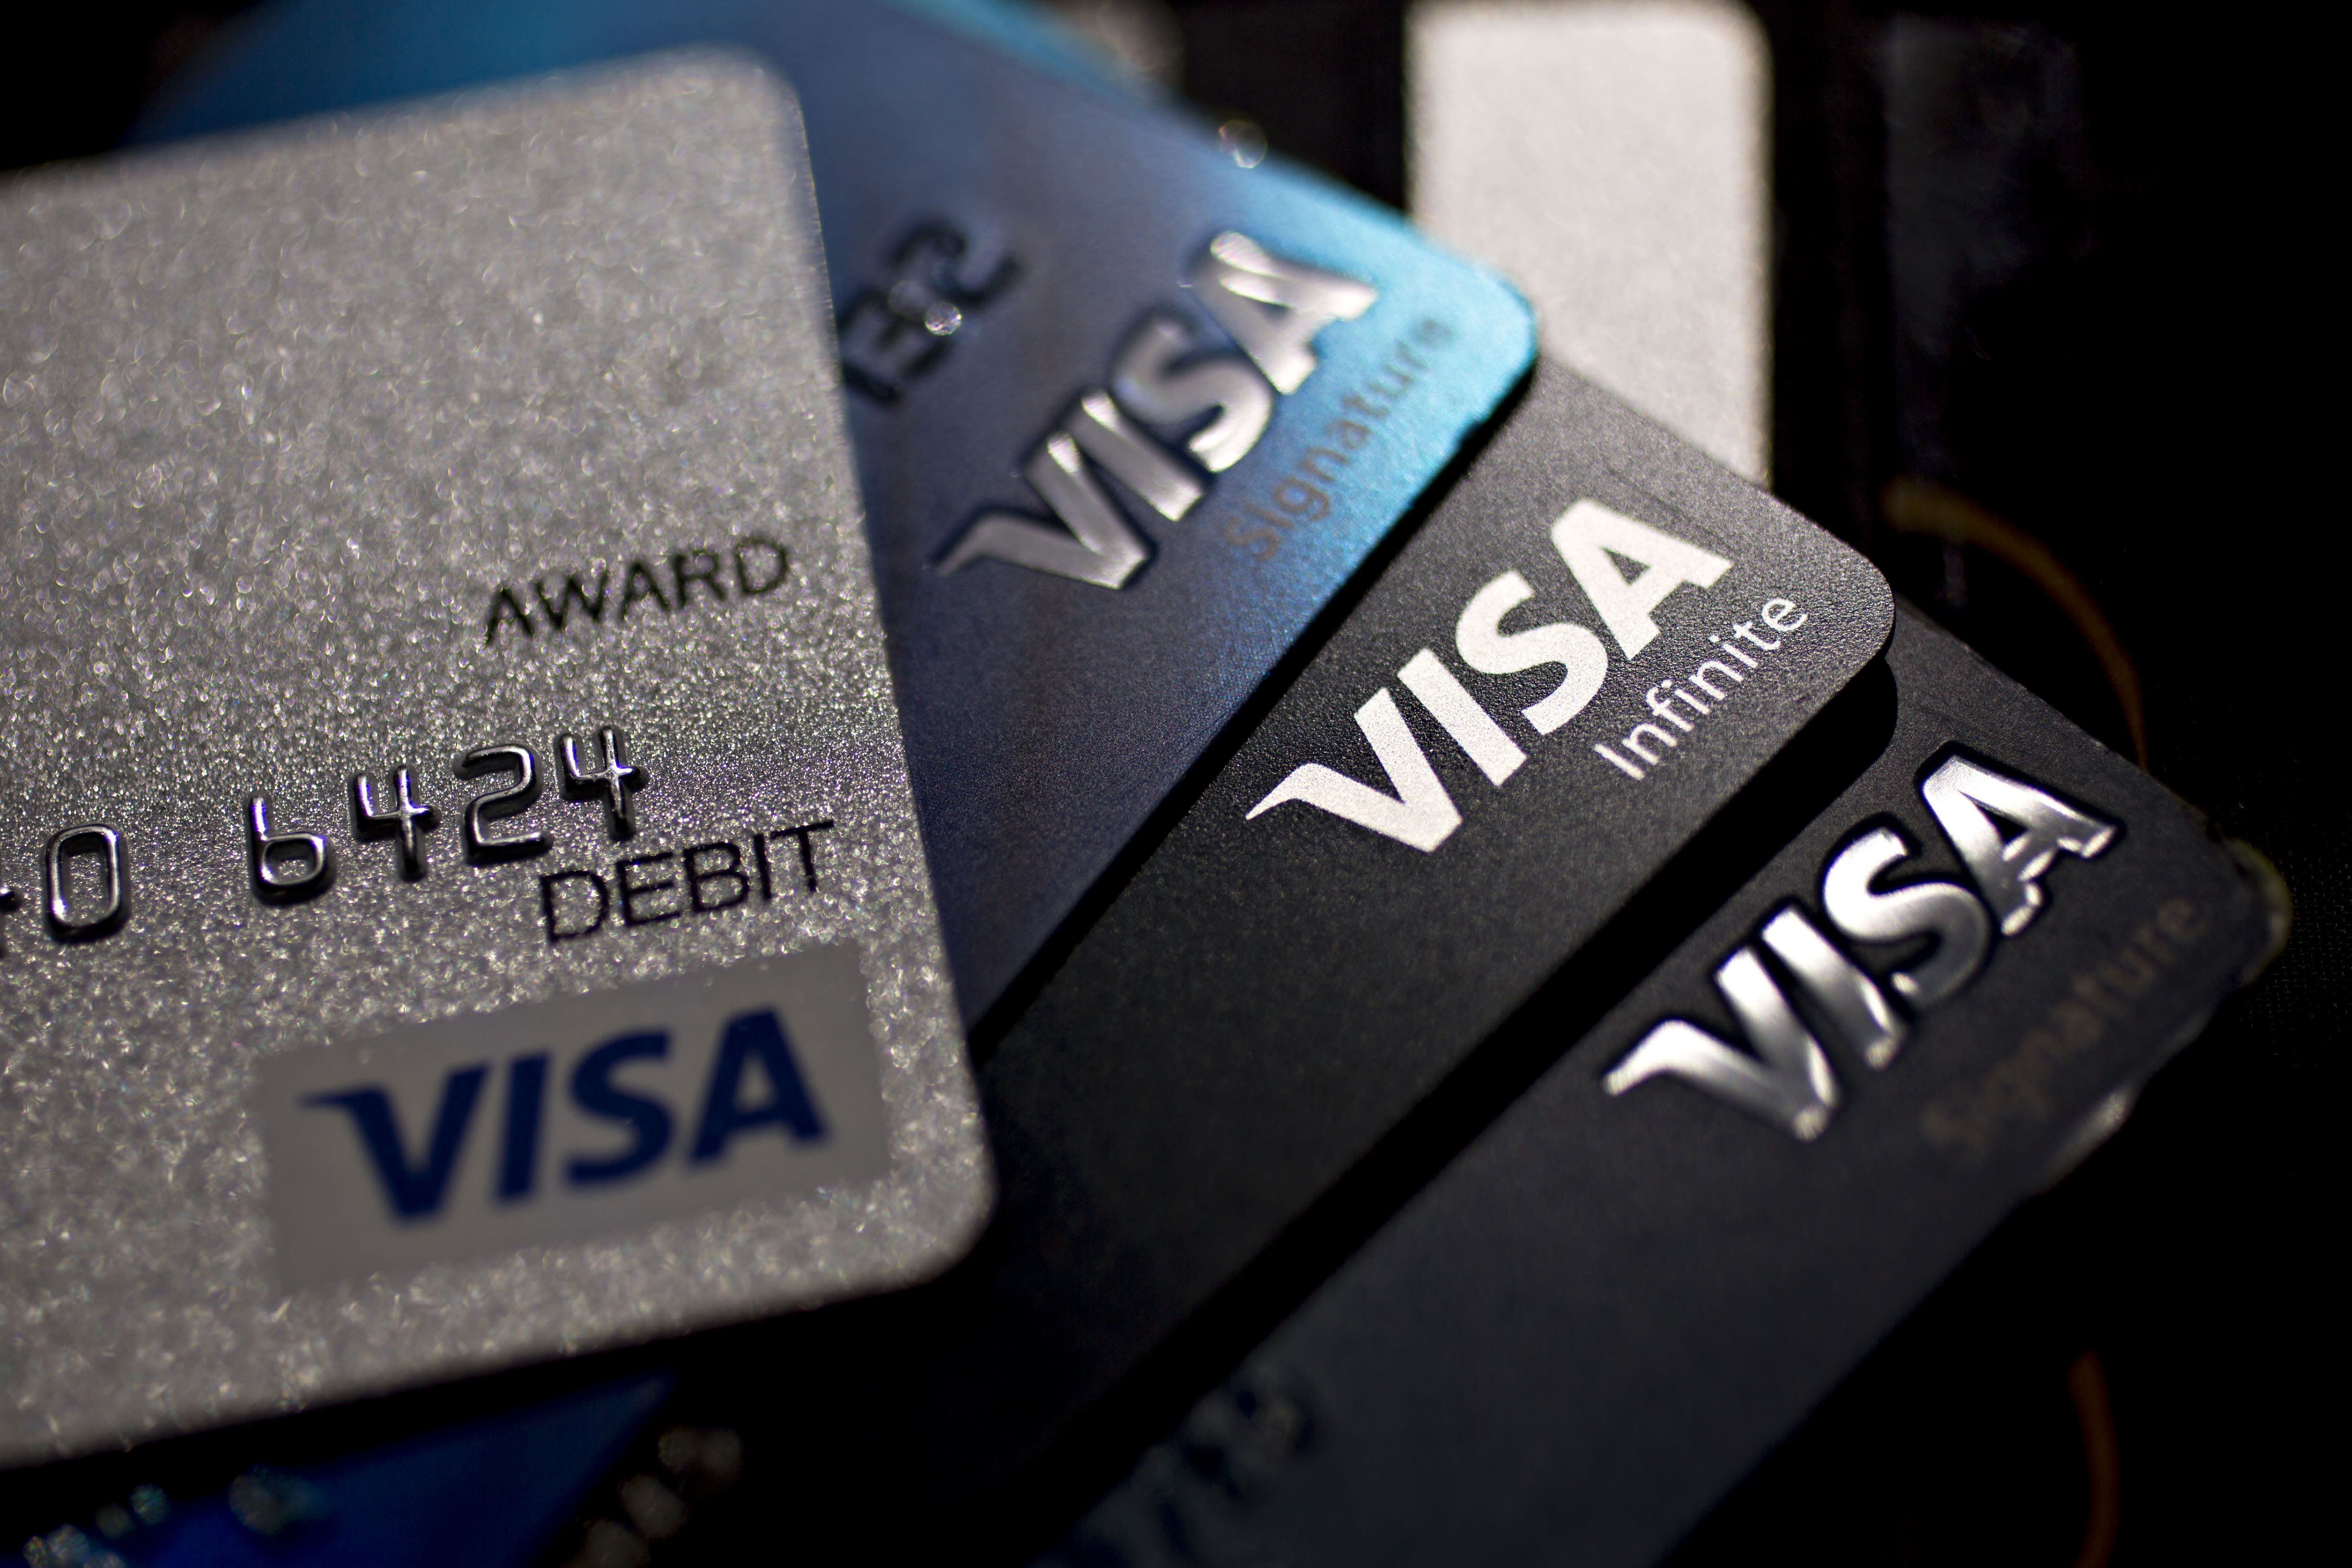 As merchants complain of Visa's high swipe fees, experts weigh in on the company's role in the retail market